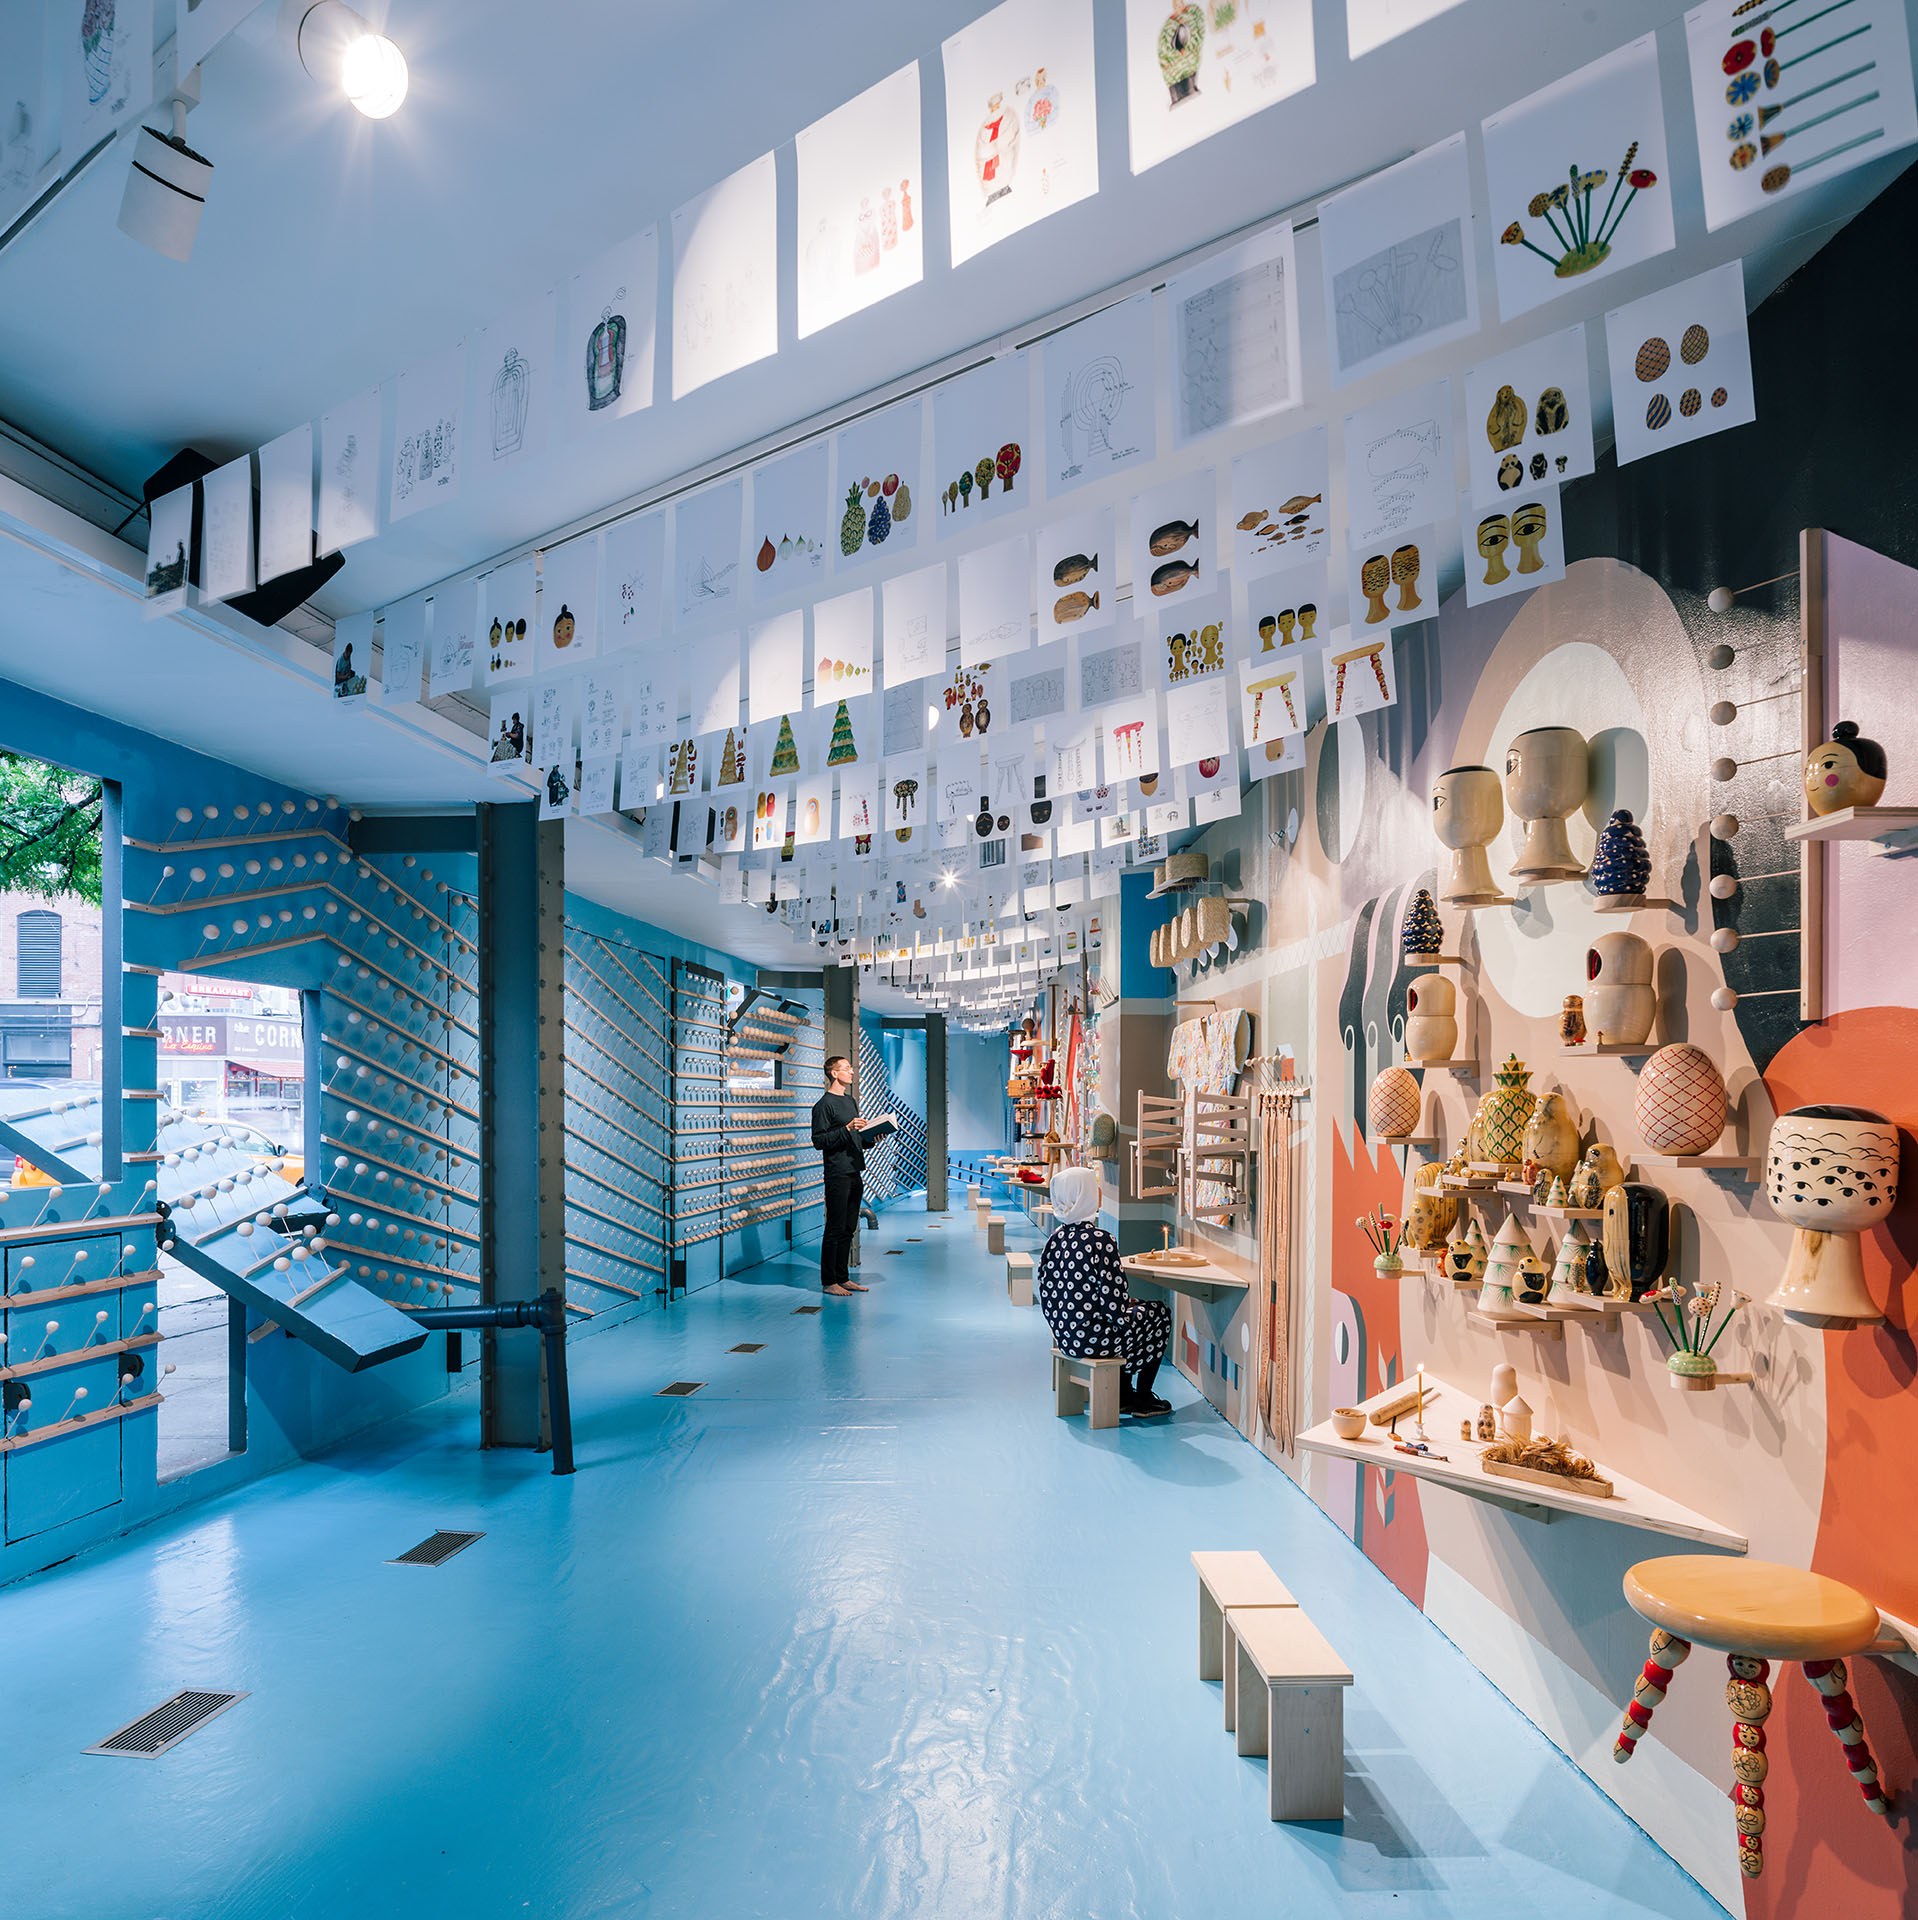 COMPANY's 'Temple of Manufacturing' at Storefront for Art and Architecture, 2017. Photography Imagen Subliminal (Miguel de Guzmán)